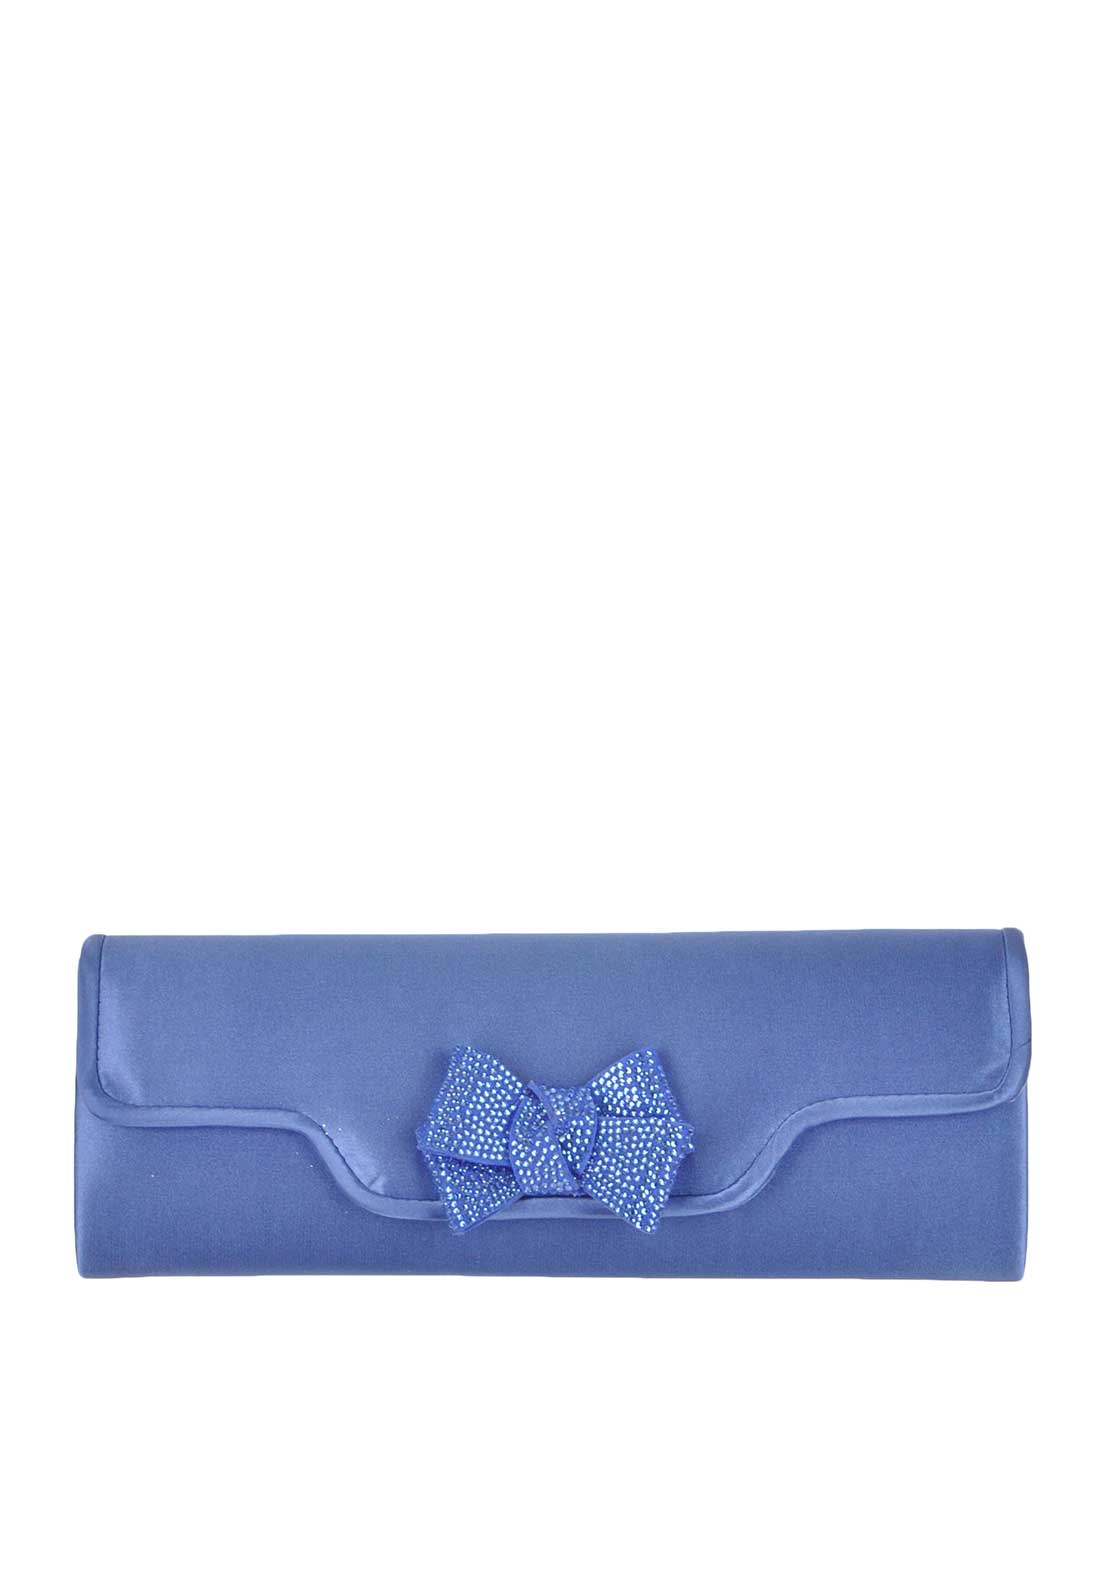 Glamour Satin Embellished Bow Envelope Clutch Bag, Blue